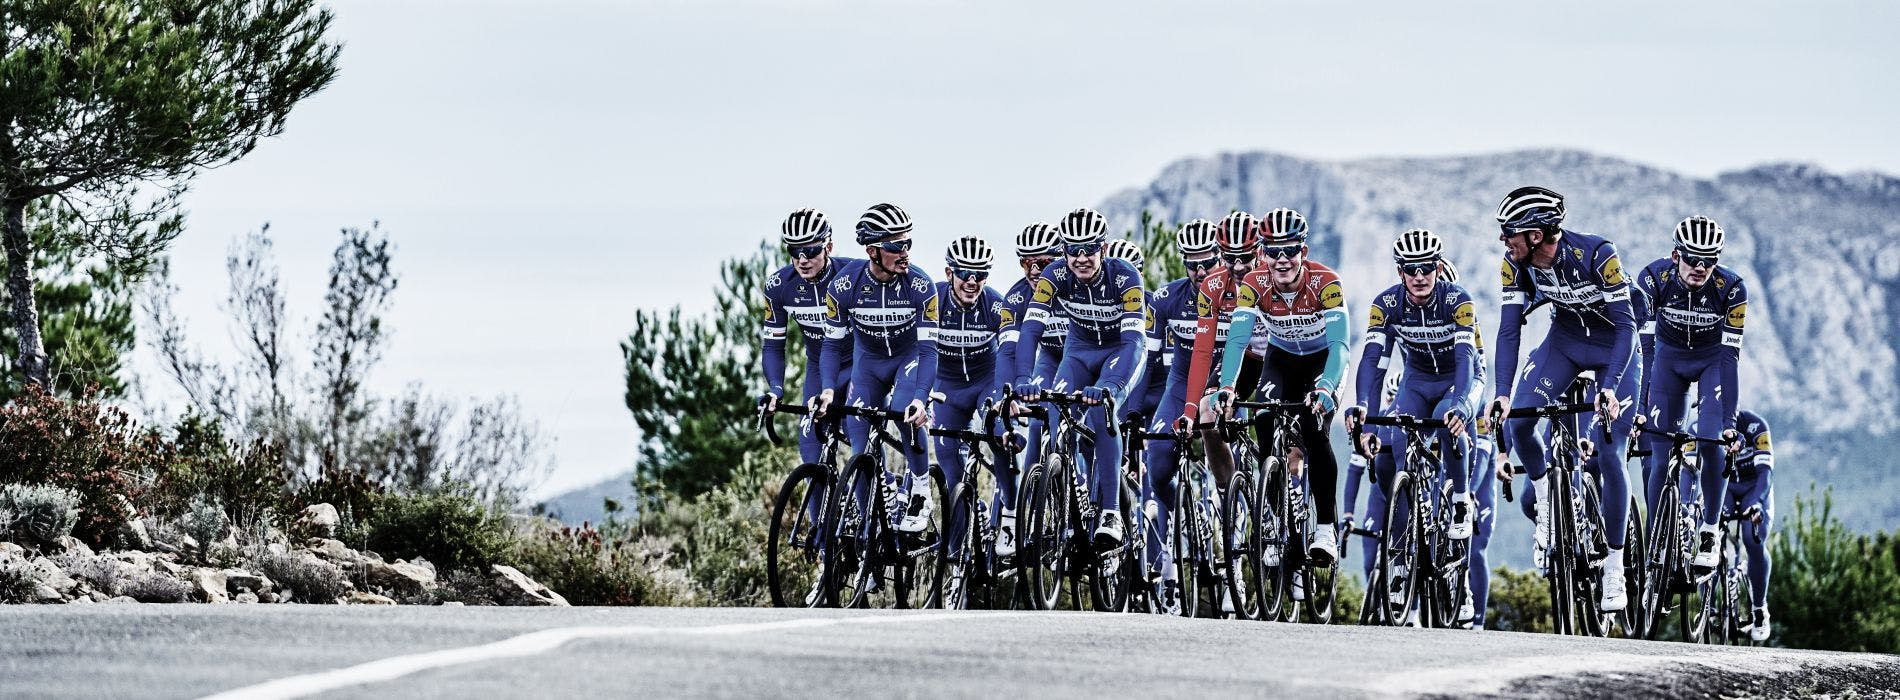 Deceuninck Quick-Step 2019